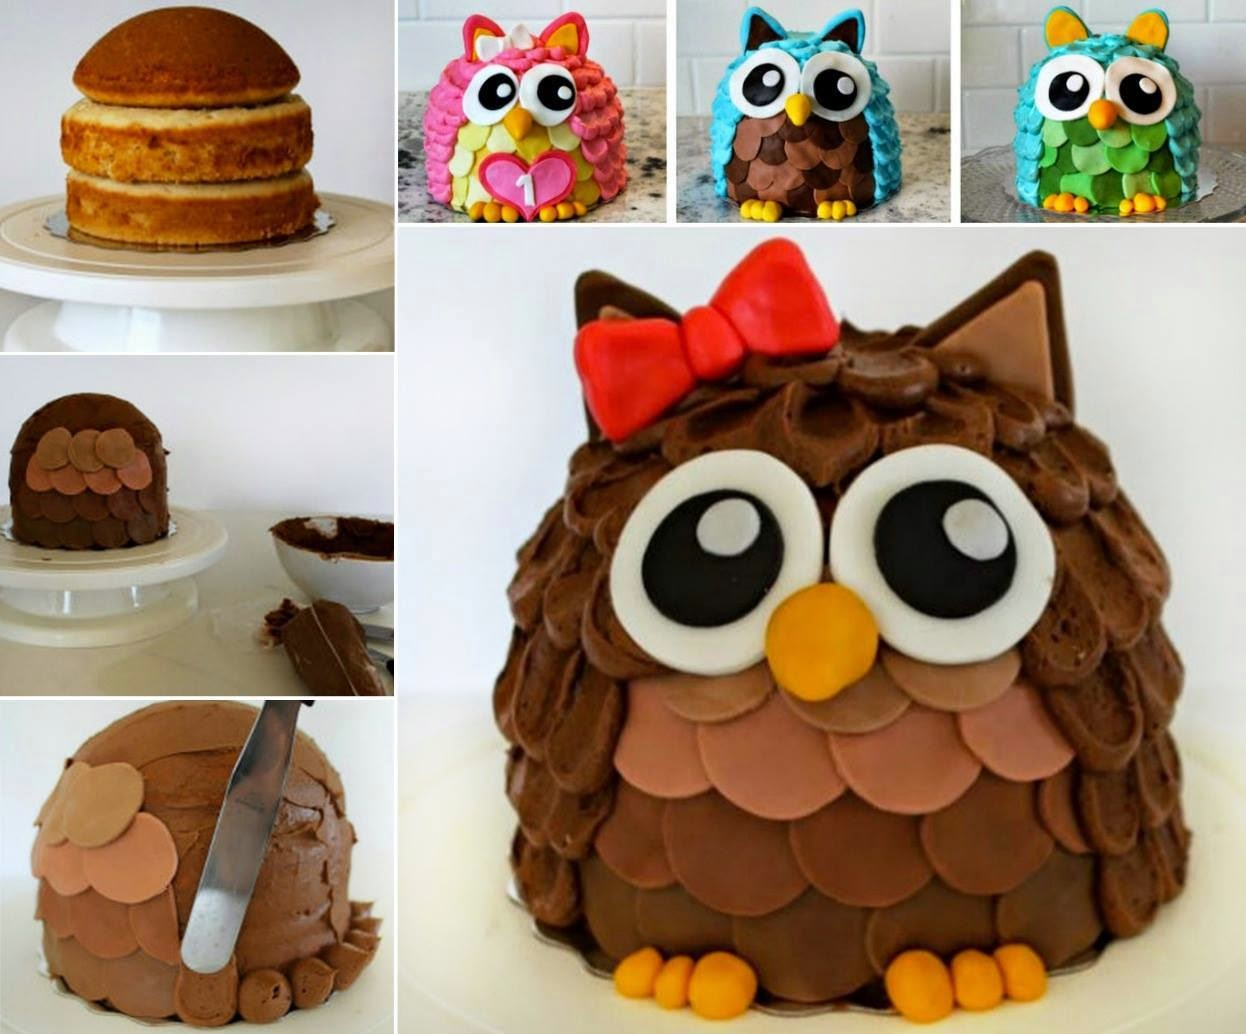 Easy Owl Cake Design : Owl Cake Creative Ideas